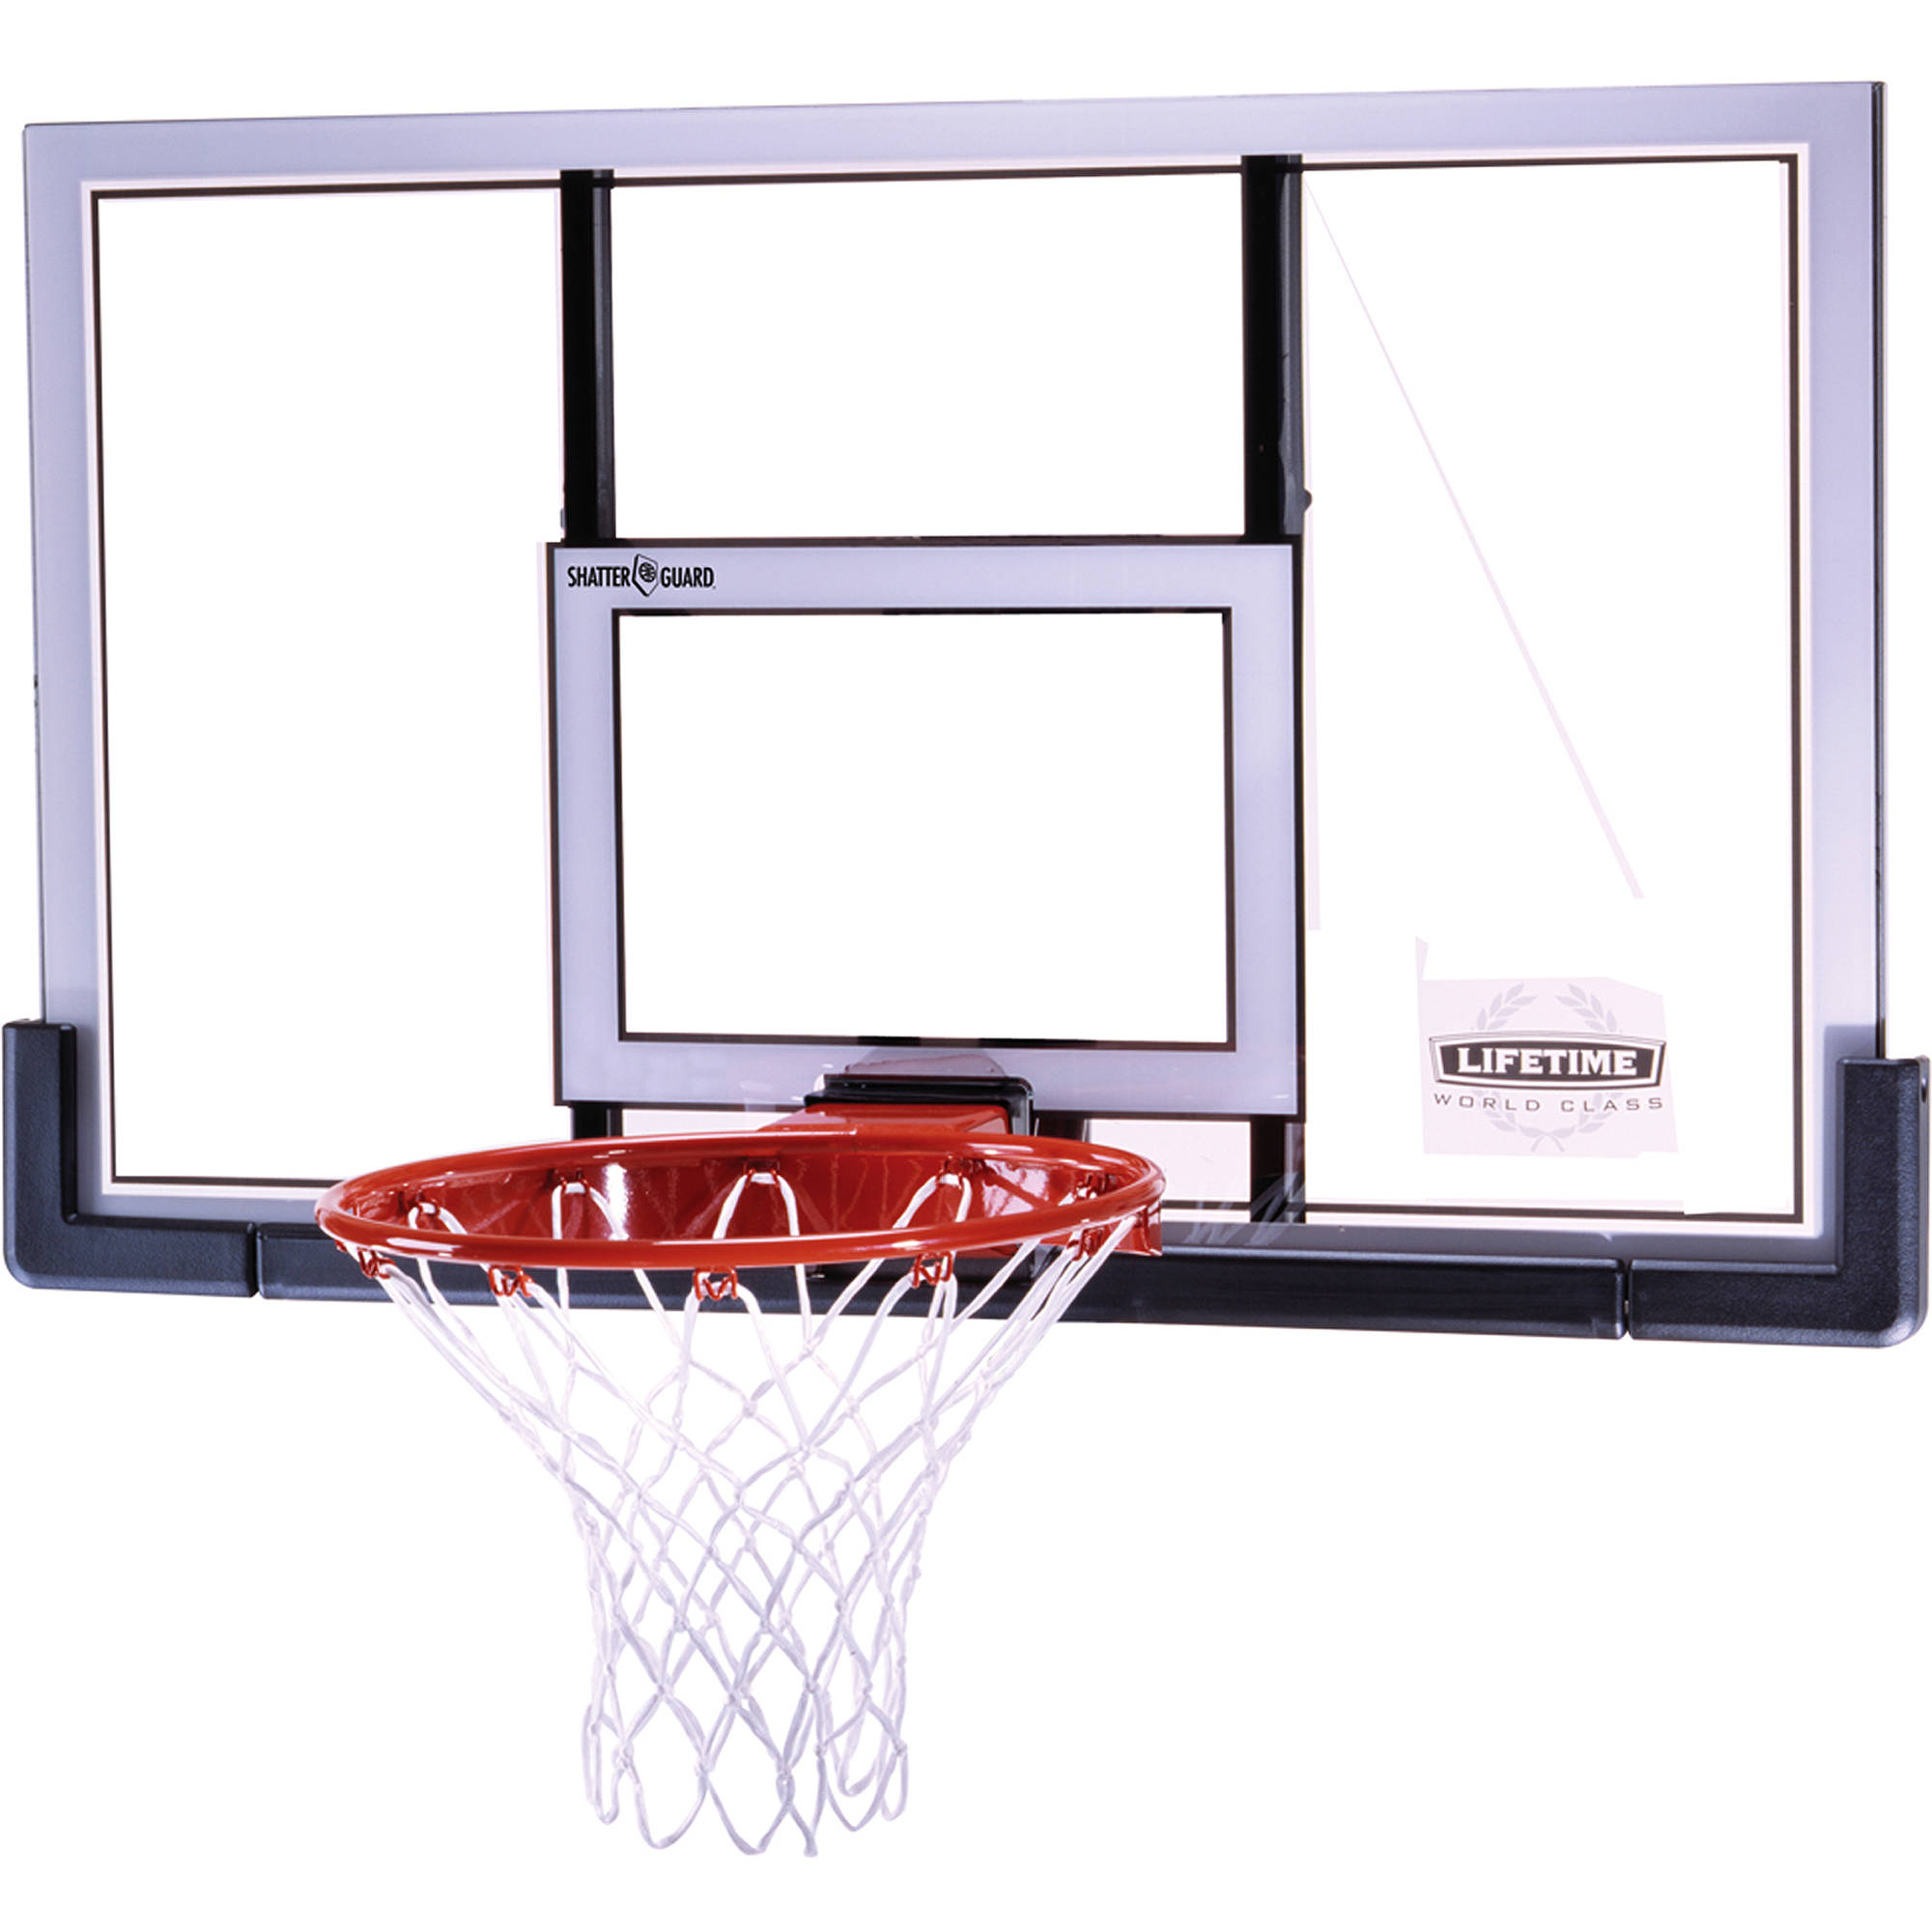 How to Add a Backboard and Hoop to an Existing Basketball Pole forecasting